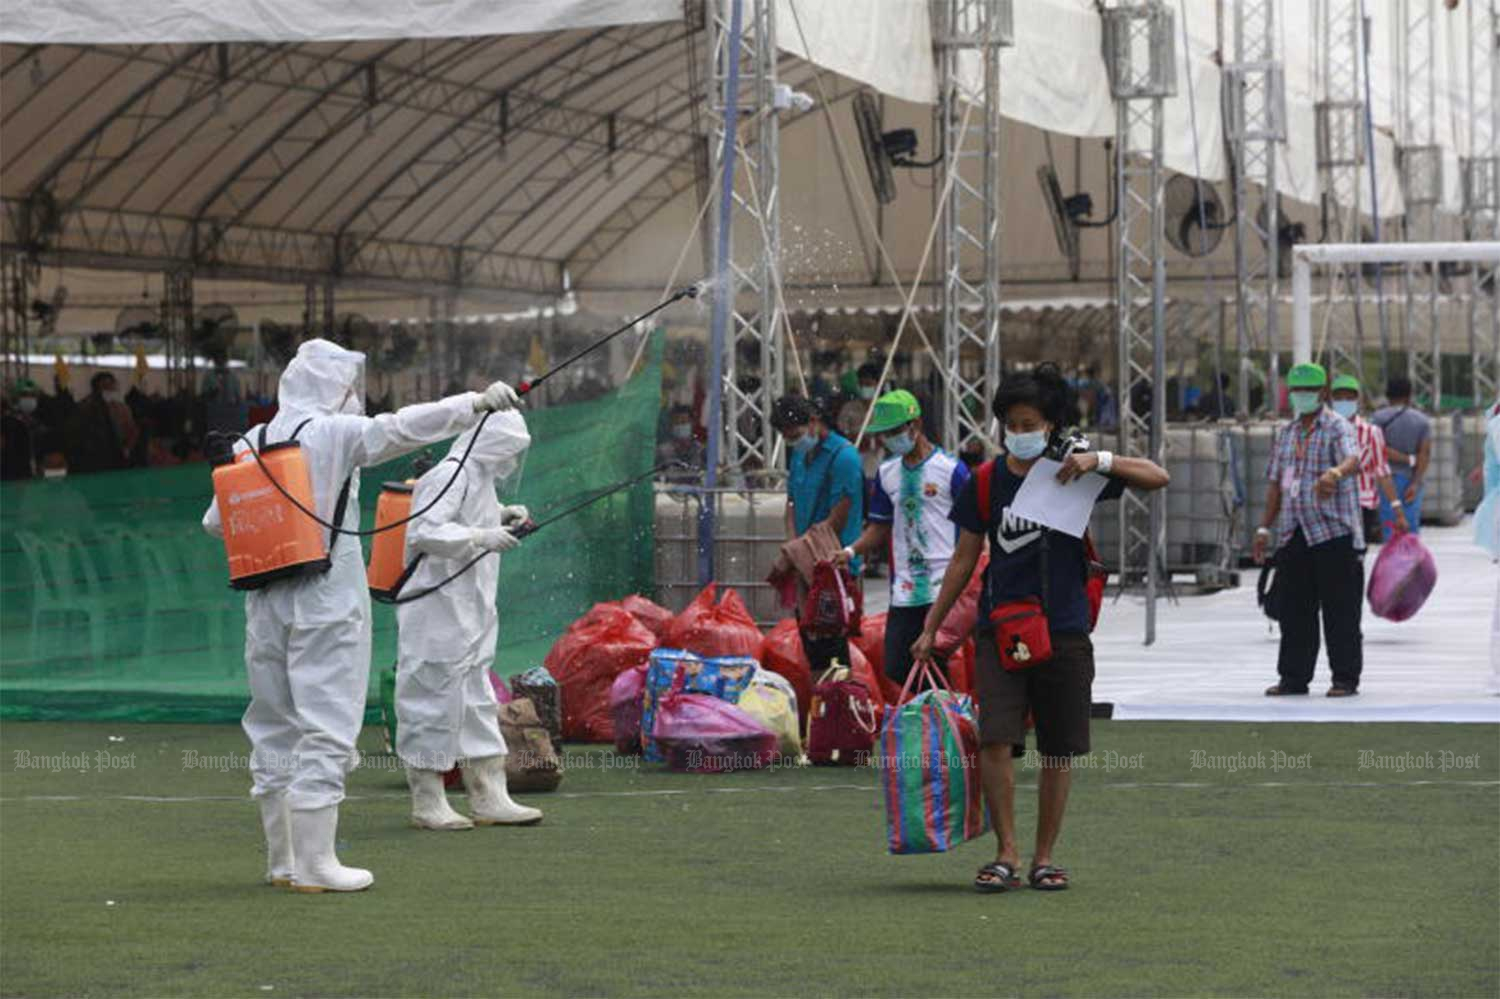 Migrant workers are sprayed with disinfectant as they leave the Covid-19 field hospital at Samut Sakhon's provincial stadium, after completing their quarantine period on Jan 10. (File photo: Arnun Chonmahatrakoo)